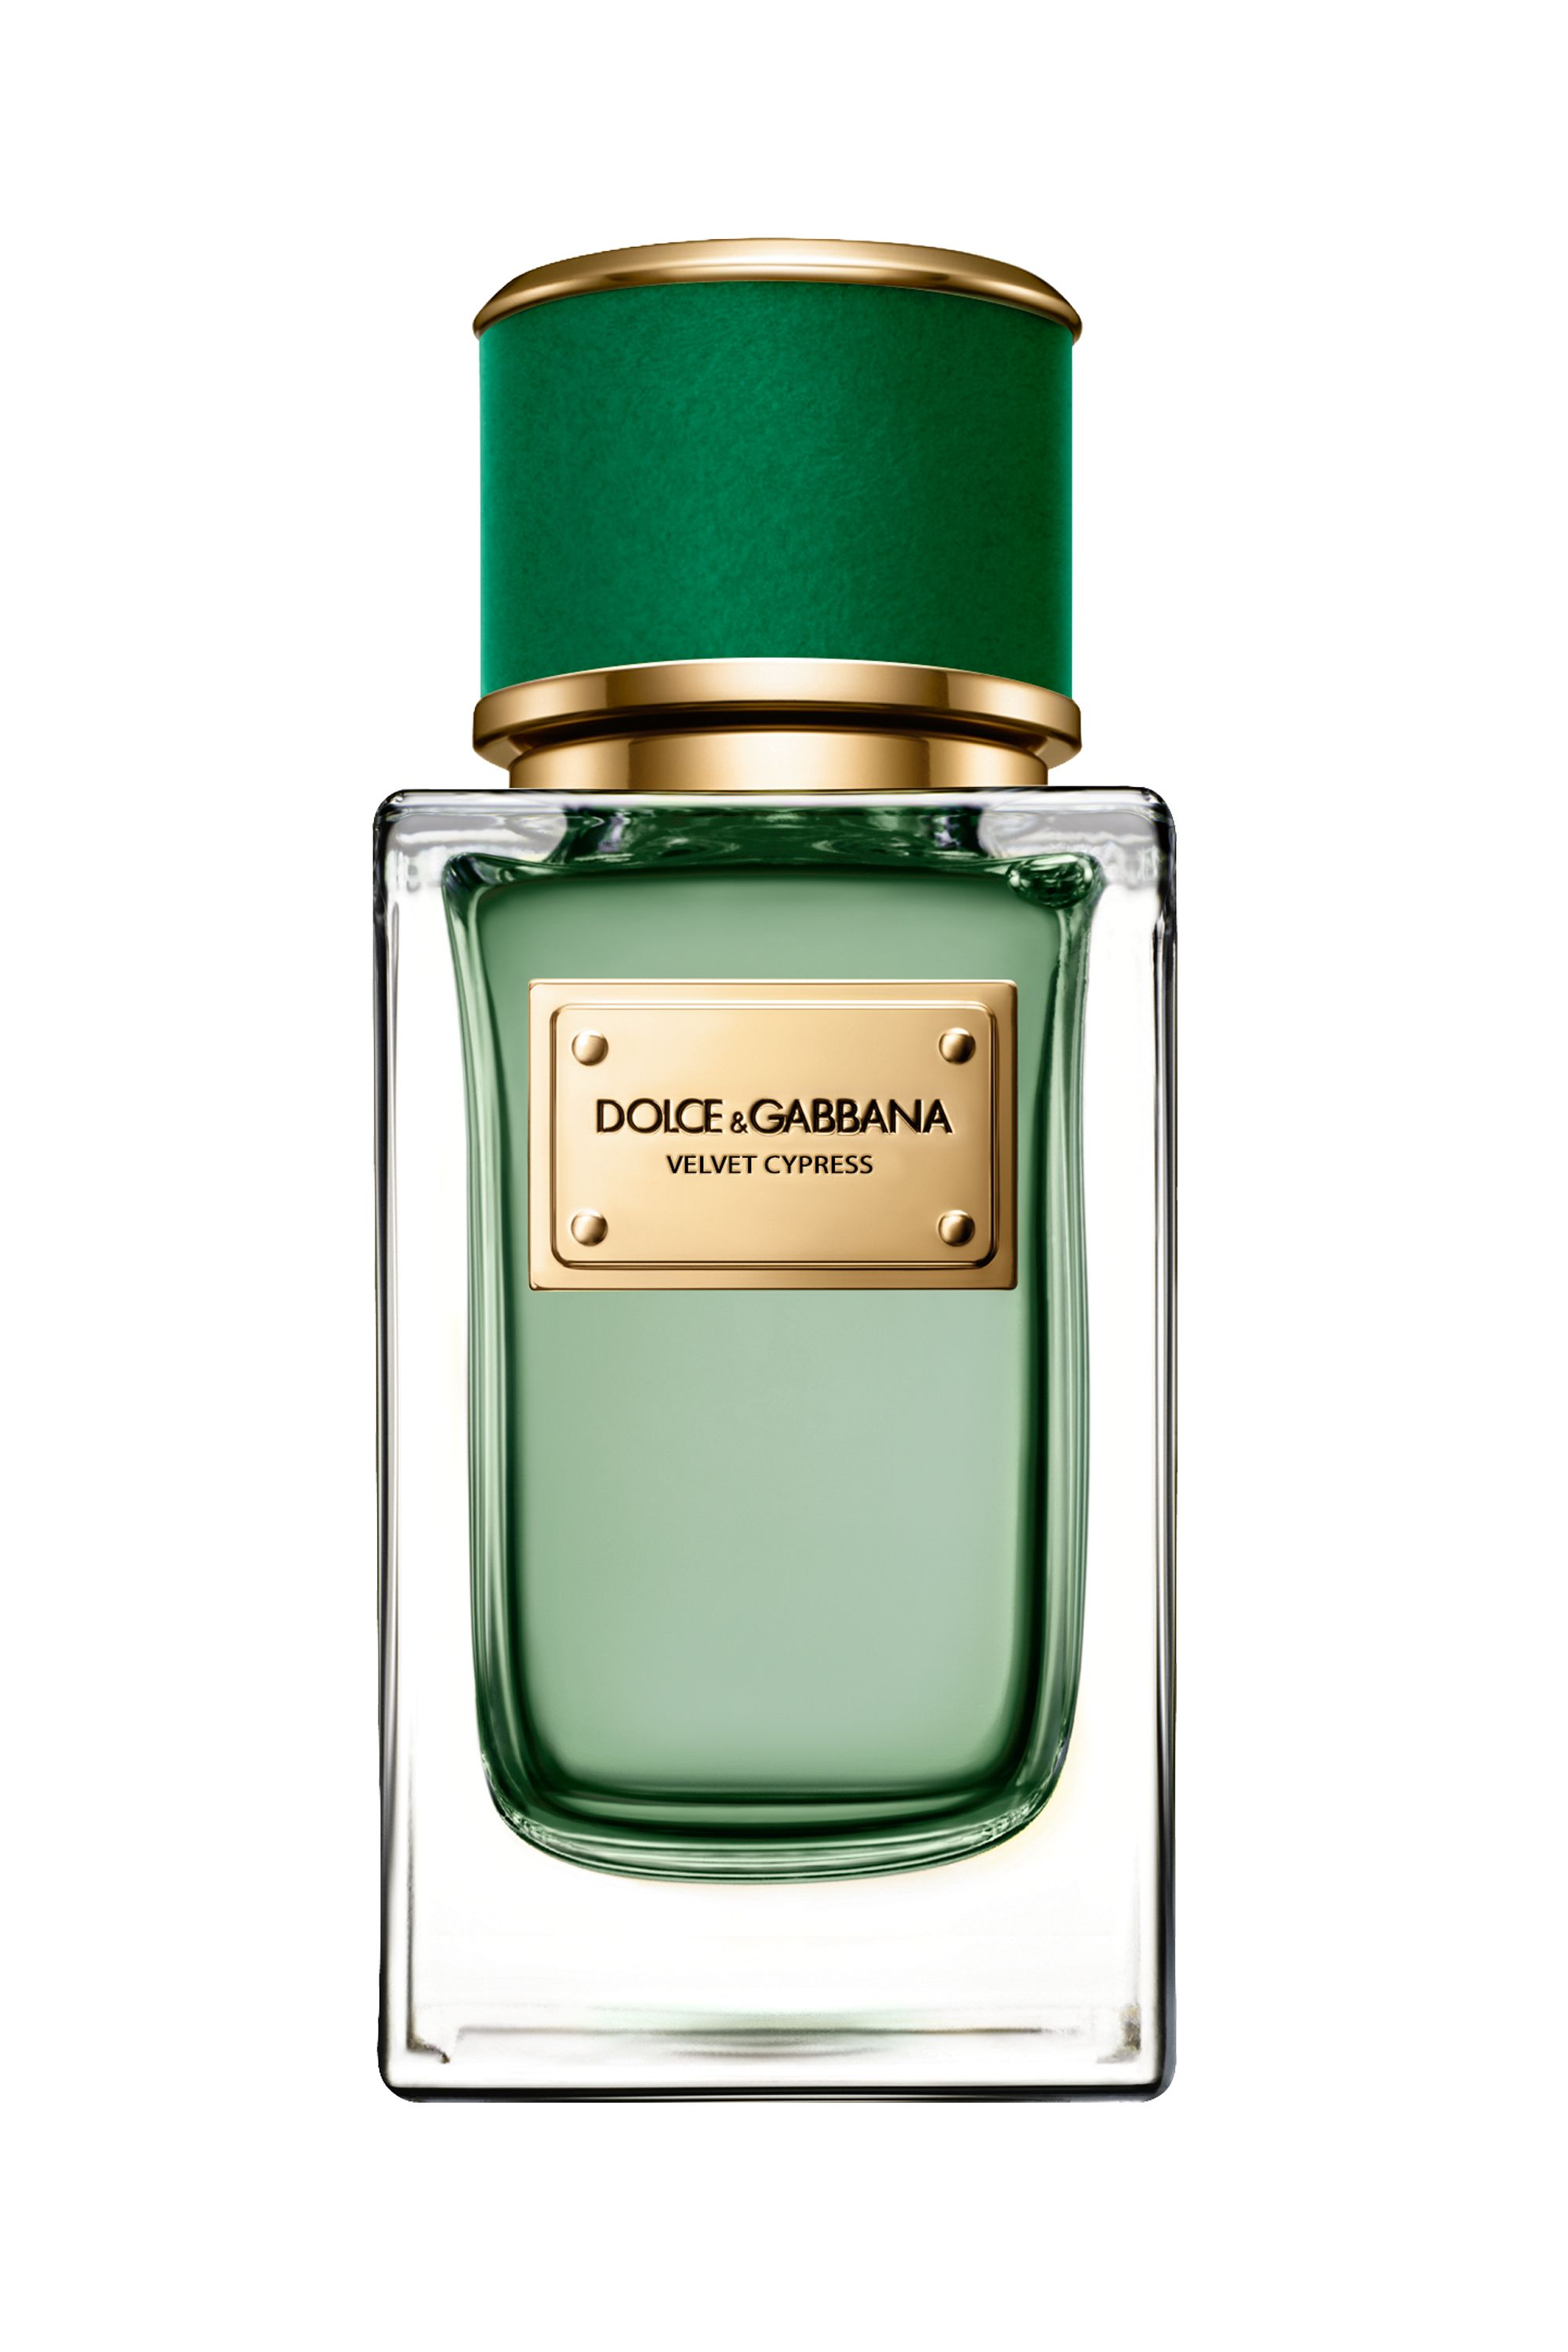 20 Summer Fragrances That Will Transport You To Paris Italy Or Hawaii Perfume Perfume Scents Fragrance